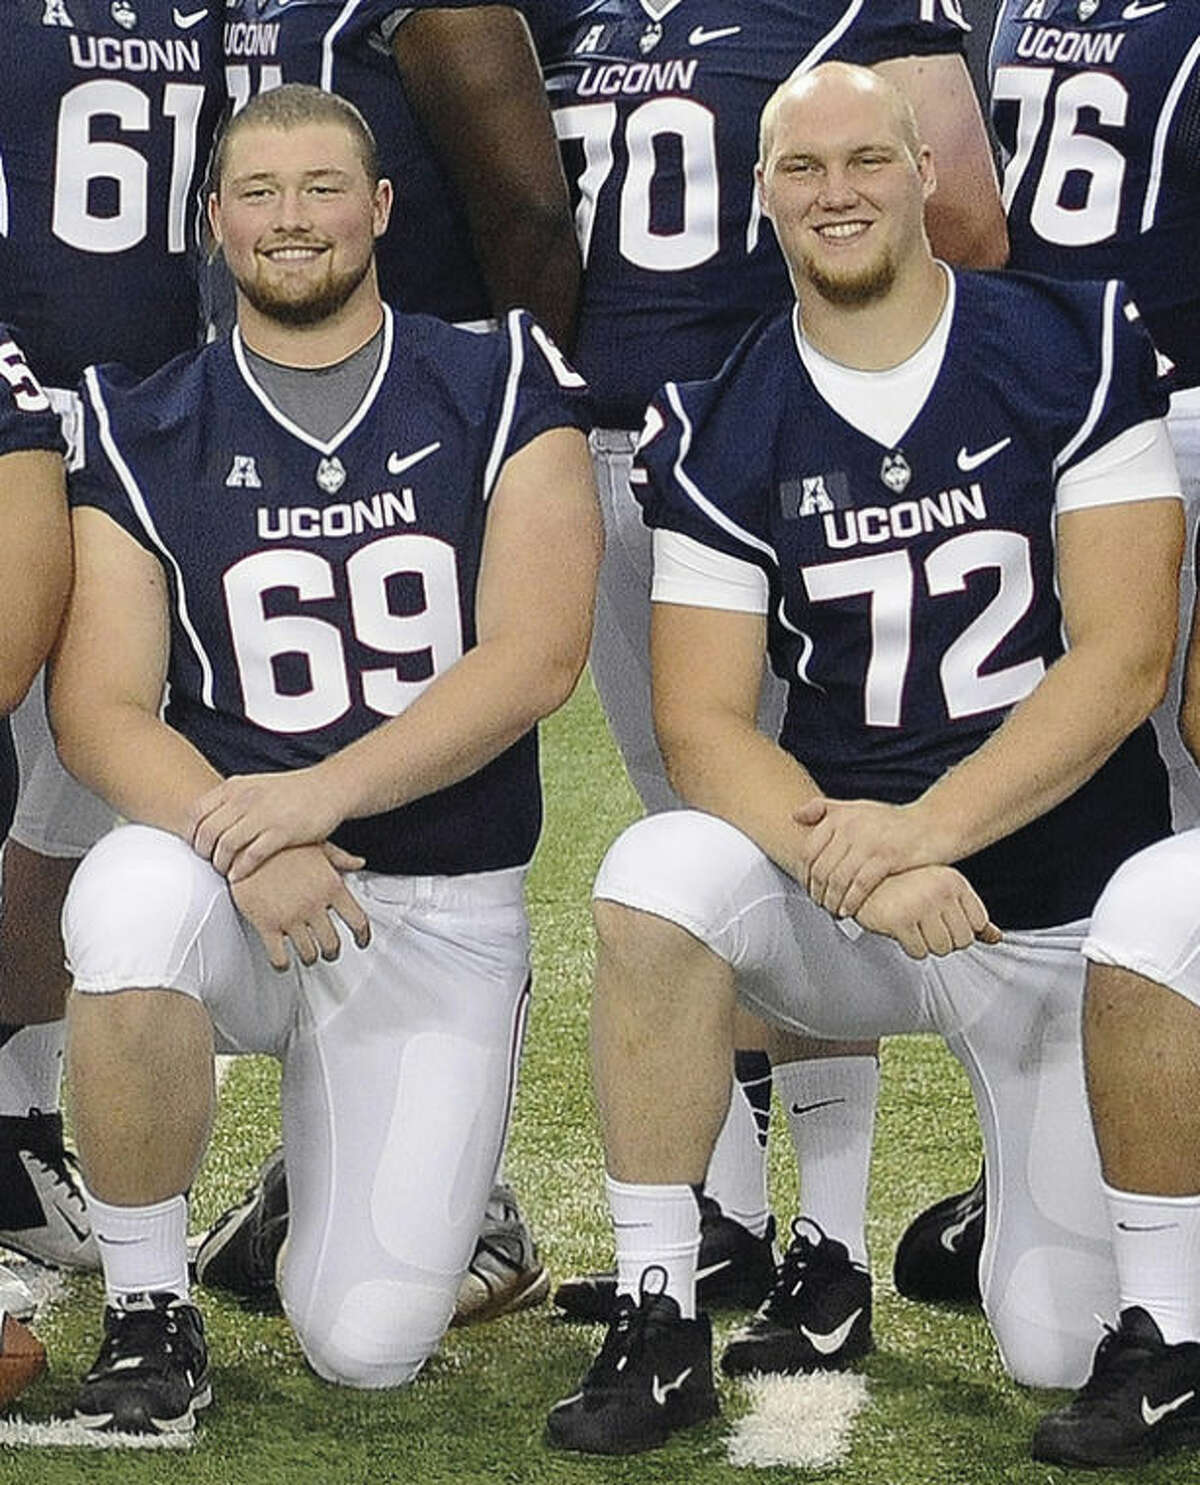 UConn senior linemen, from left, Stephen Greene and Jimmy Bennett were all smiles for the team's media day photo, but how much they'll be smiling this season will be dependent upon how well the 'O' line plays. AP photo